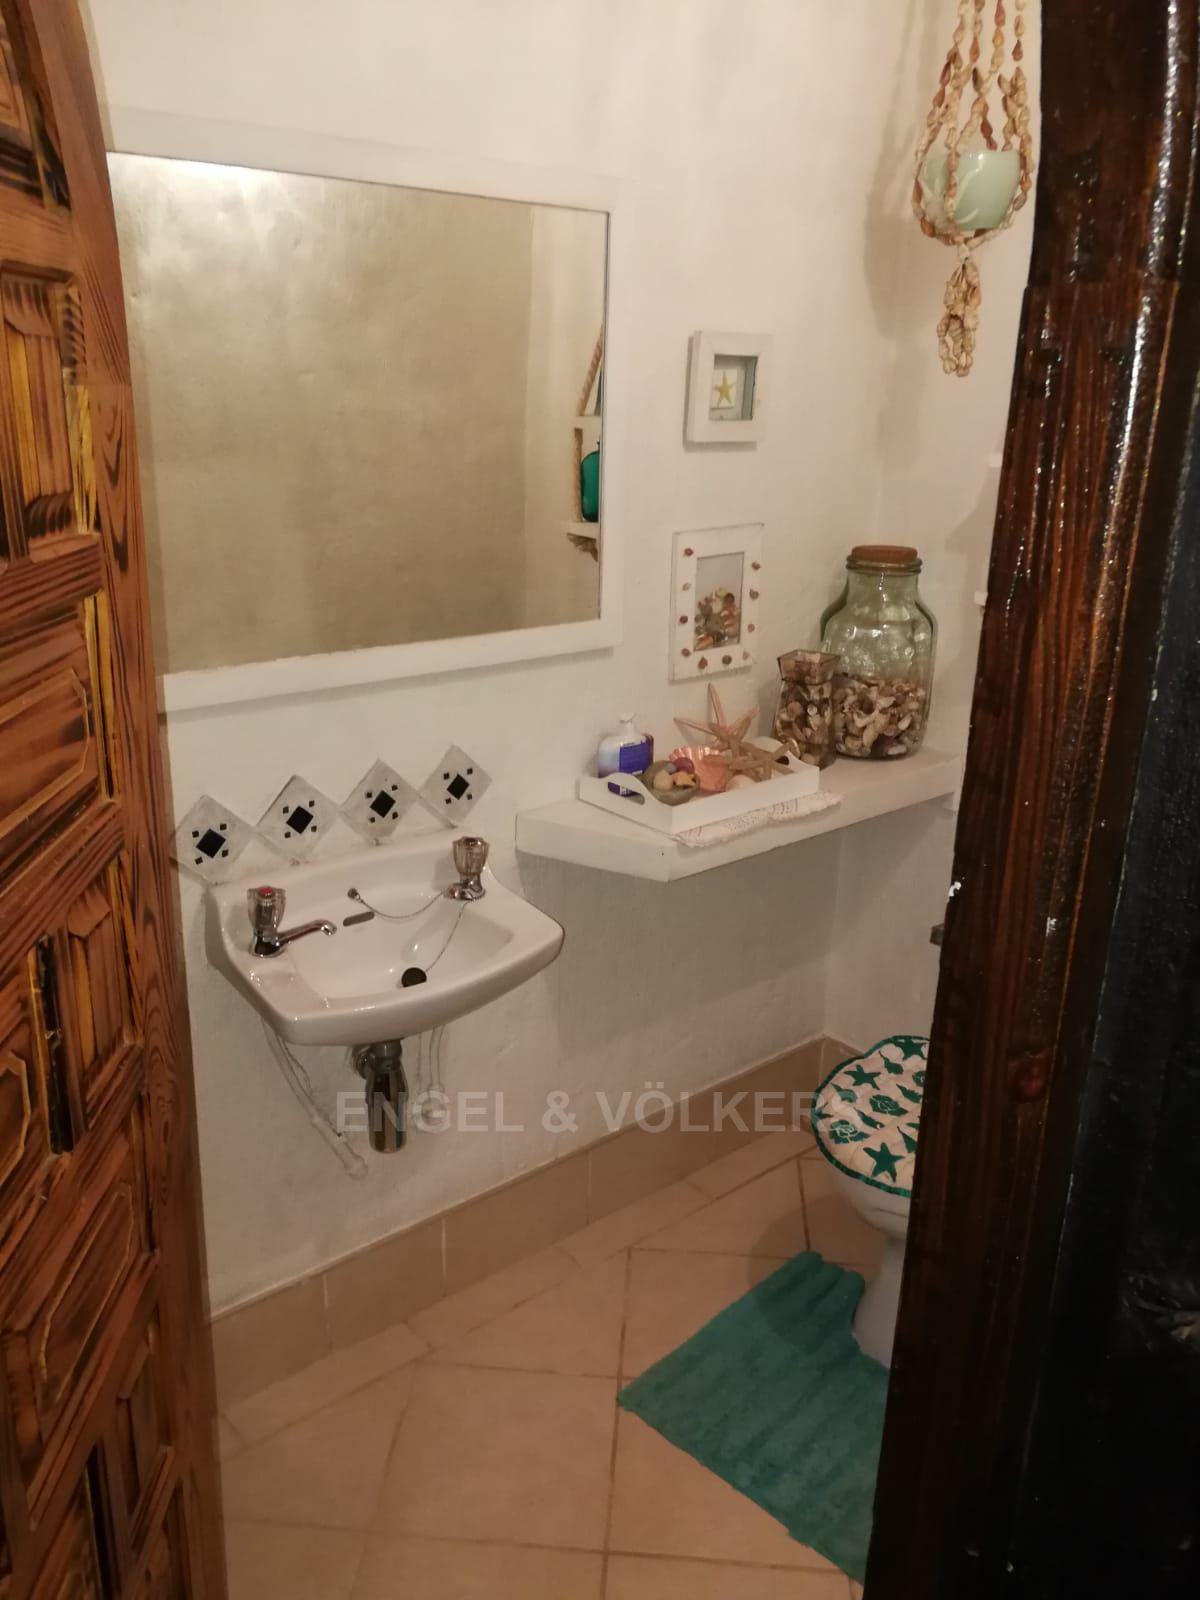 Land in Hartbeespoort Dam Area - Guest bathroom